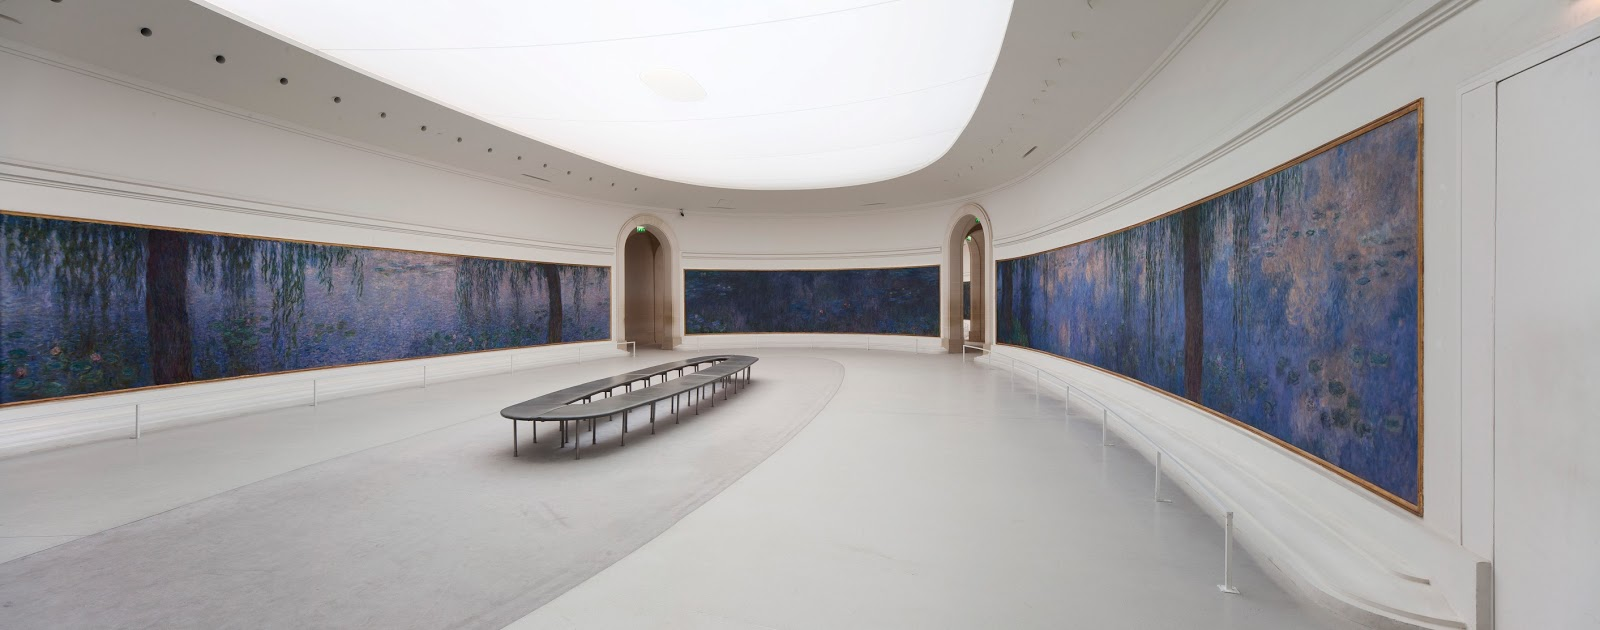 Musée Guimet Paris, Musée de l'Orangerie, Paris | The Diary of One Who Disappeared